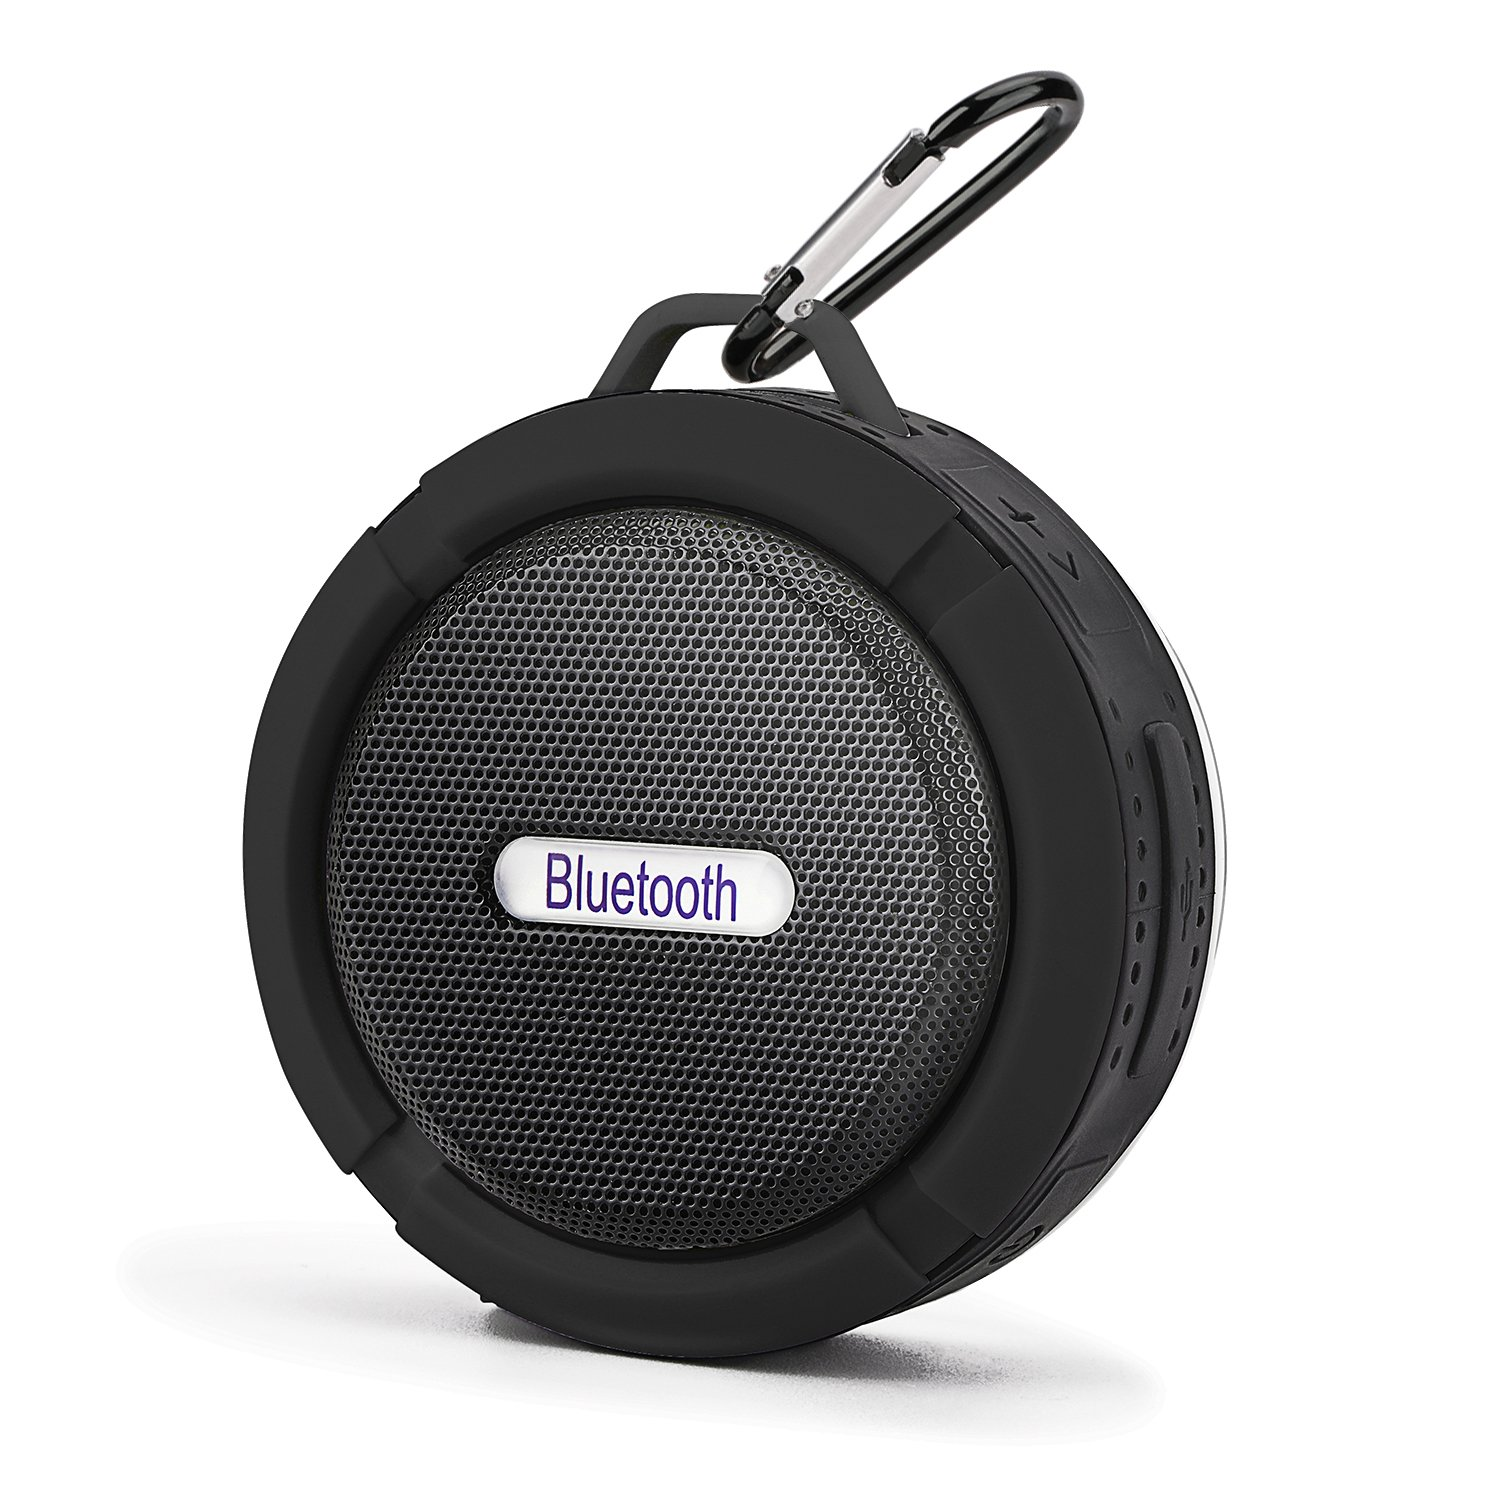 Mini Bluetooth Speaker,Retround Outdoor Speaker with Built-in Mic,High Sound Quality,Waterproof,6hrs of Playtime,Rechargeable,for Travel Black by Retround (Image #1)